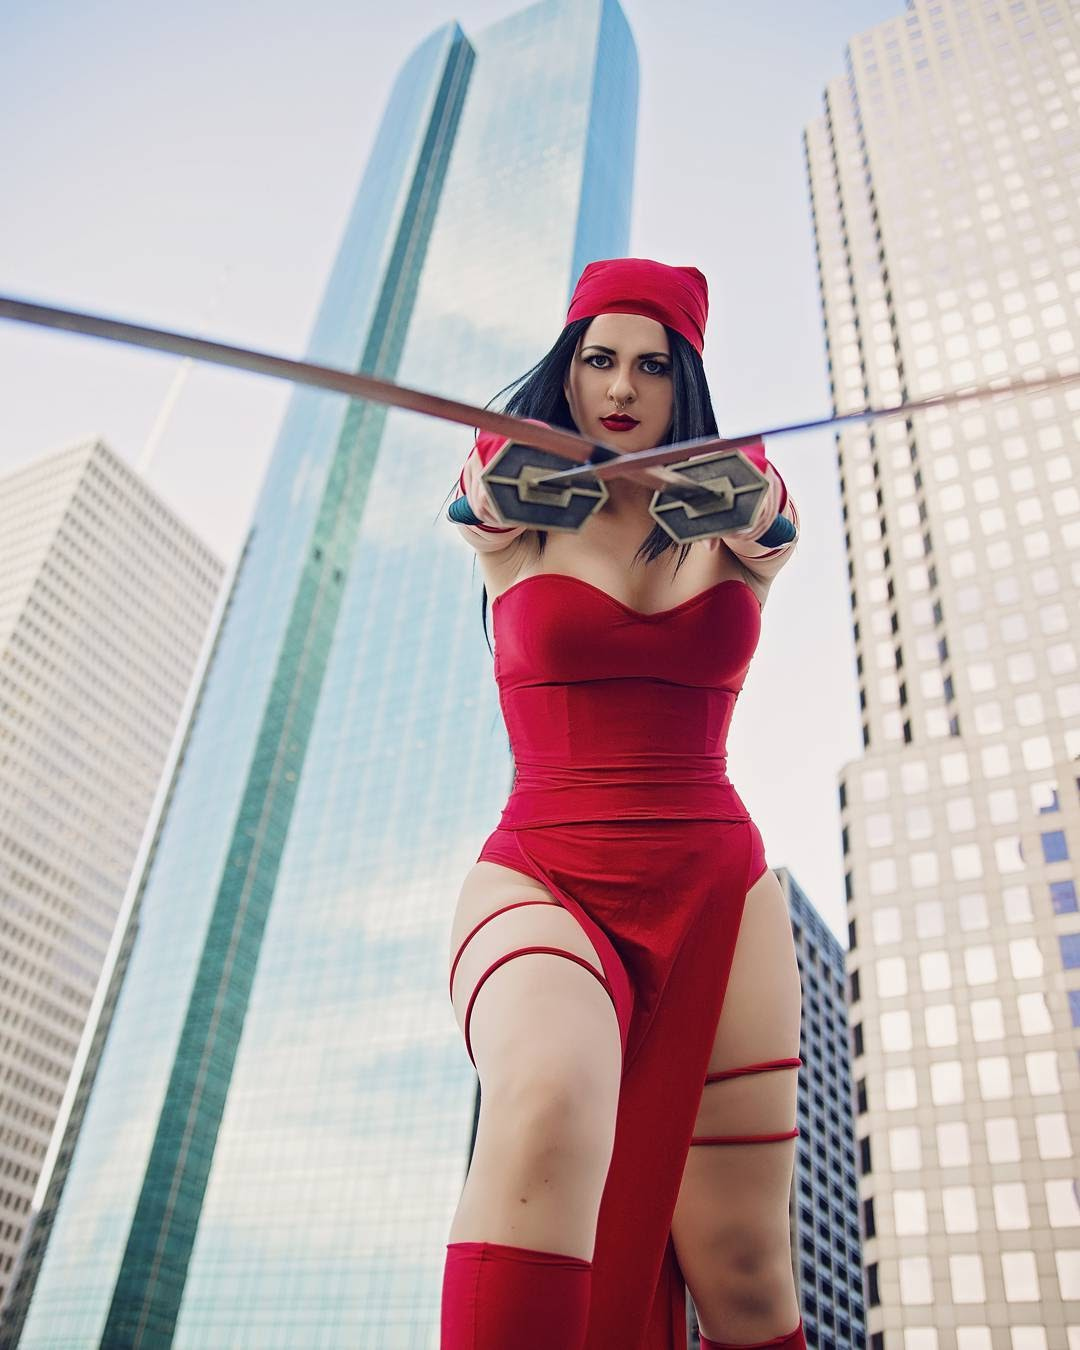 Model Christina McDaniel in Elektra cosplay